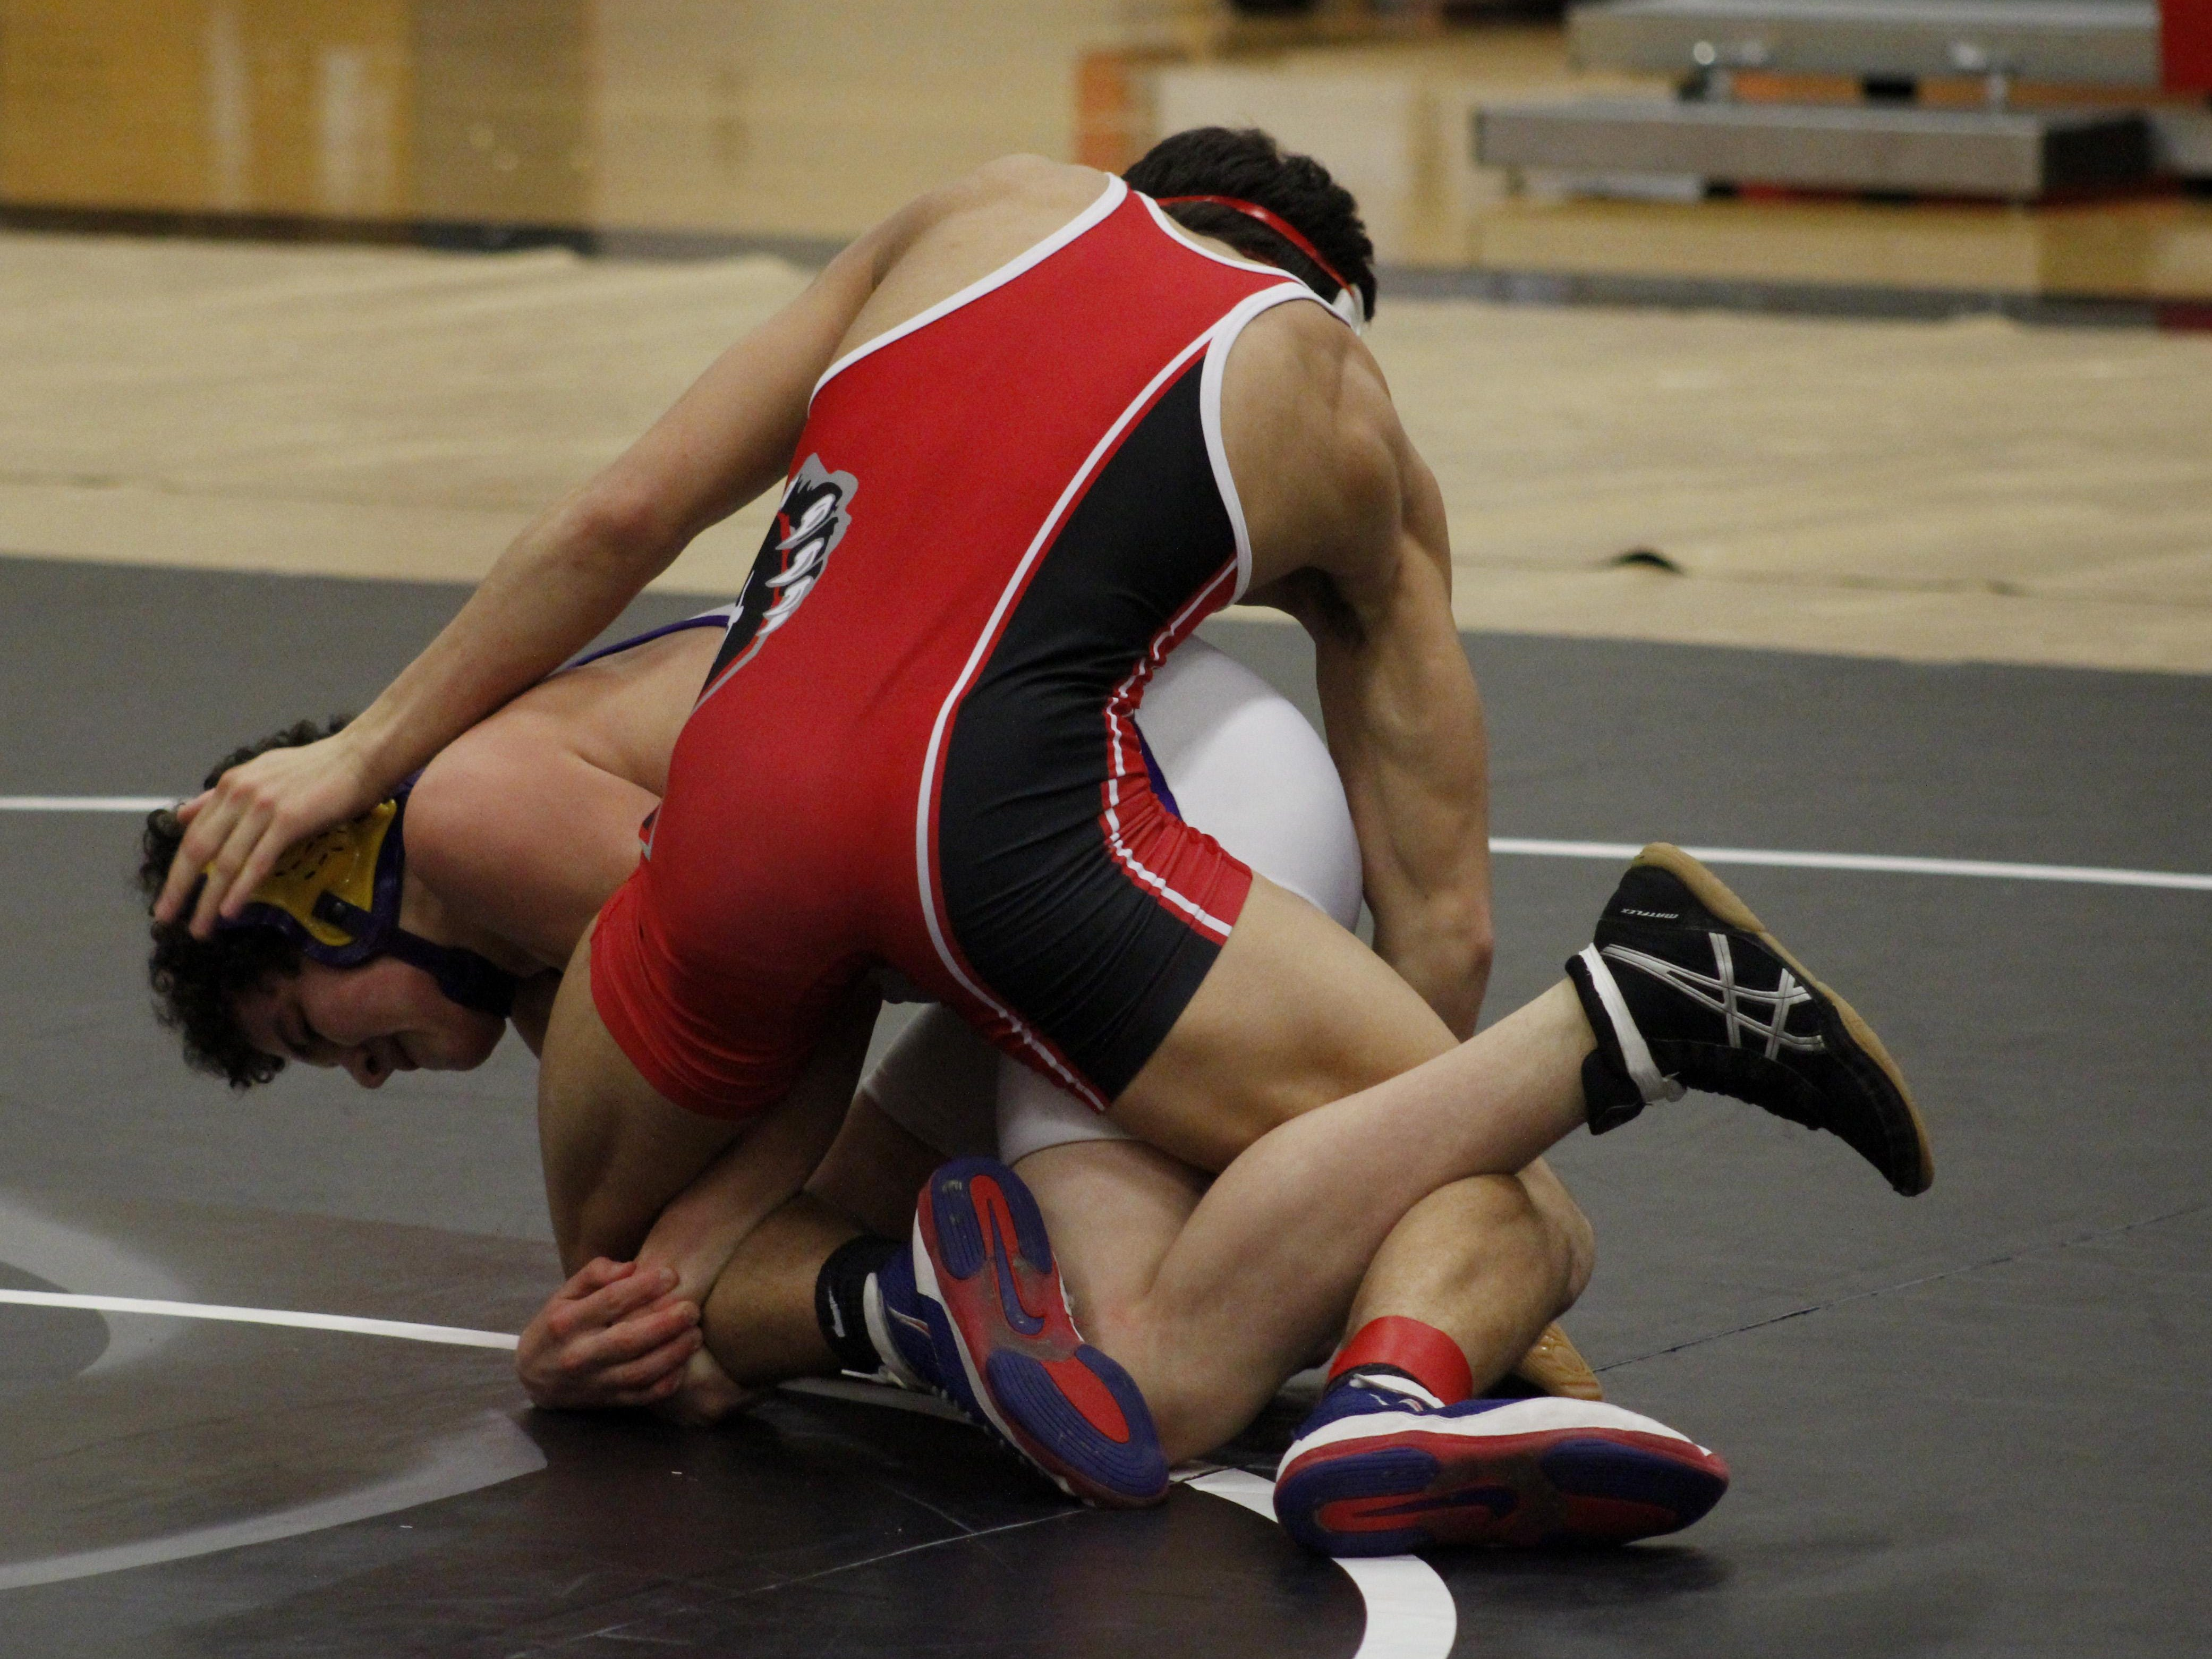 The LHSAA state wrestling championships will take place over two days Friday and Saturday at the CenturyLink Center in Bossier City